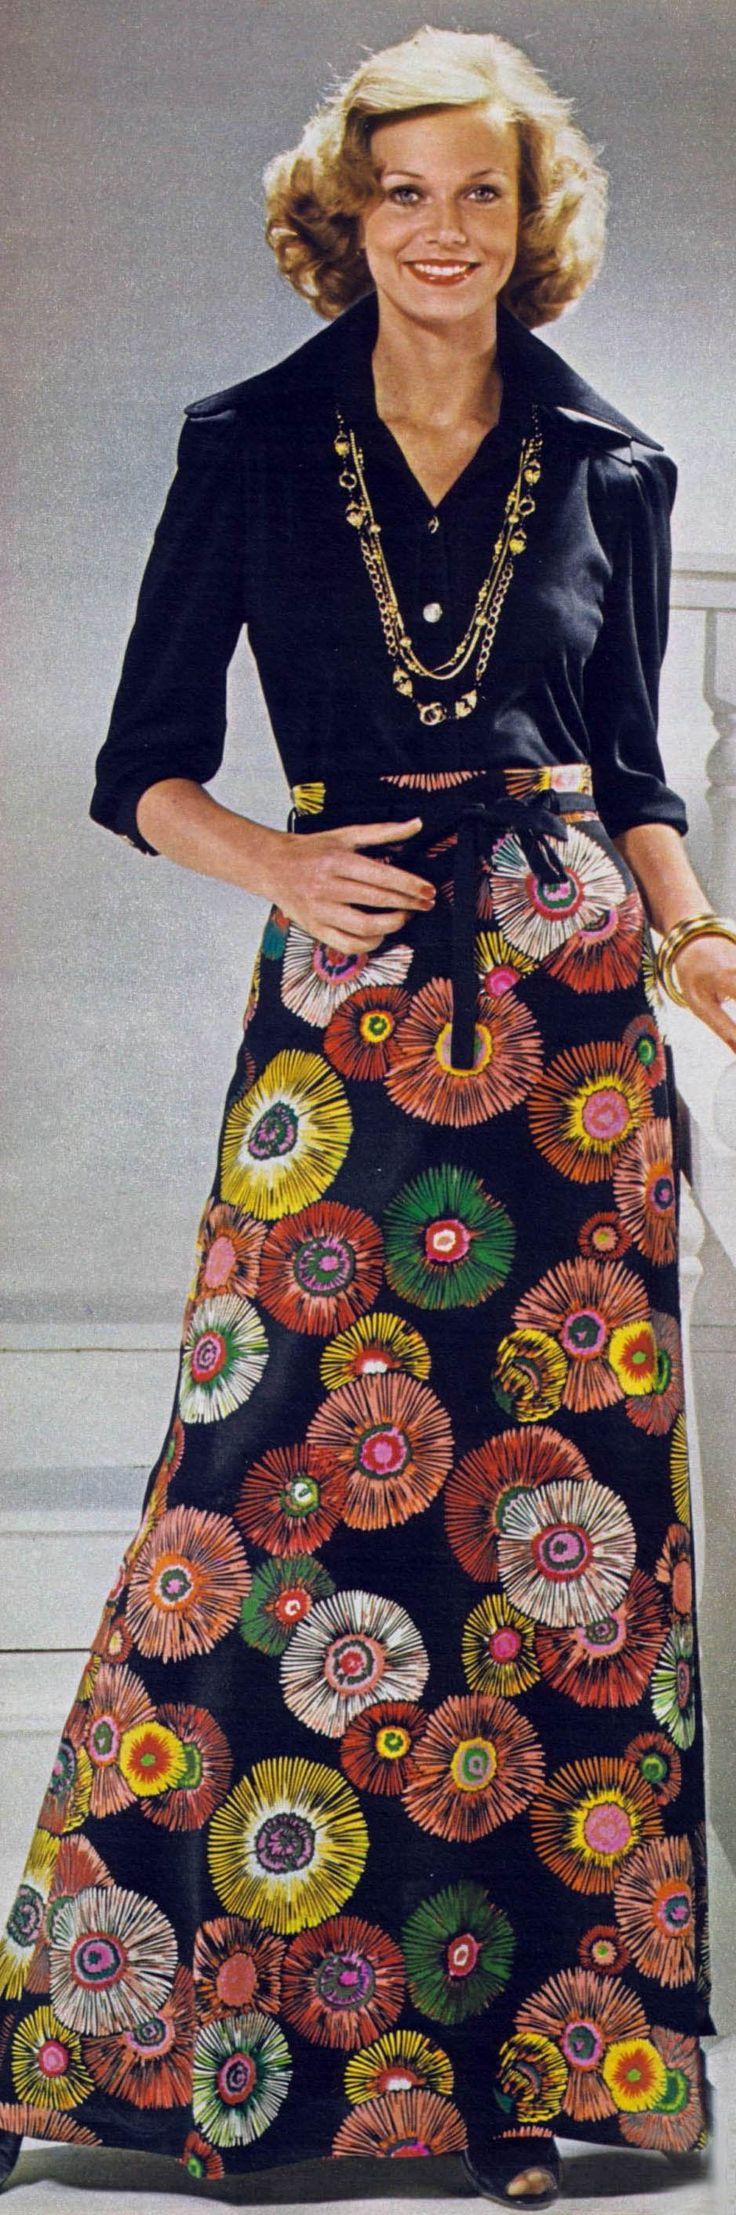 70 S Scarves: Best 25+ 70s Women Fashion Ideas On Pinterest